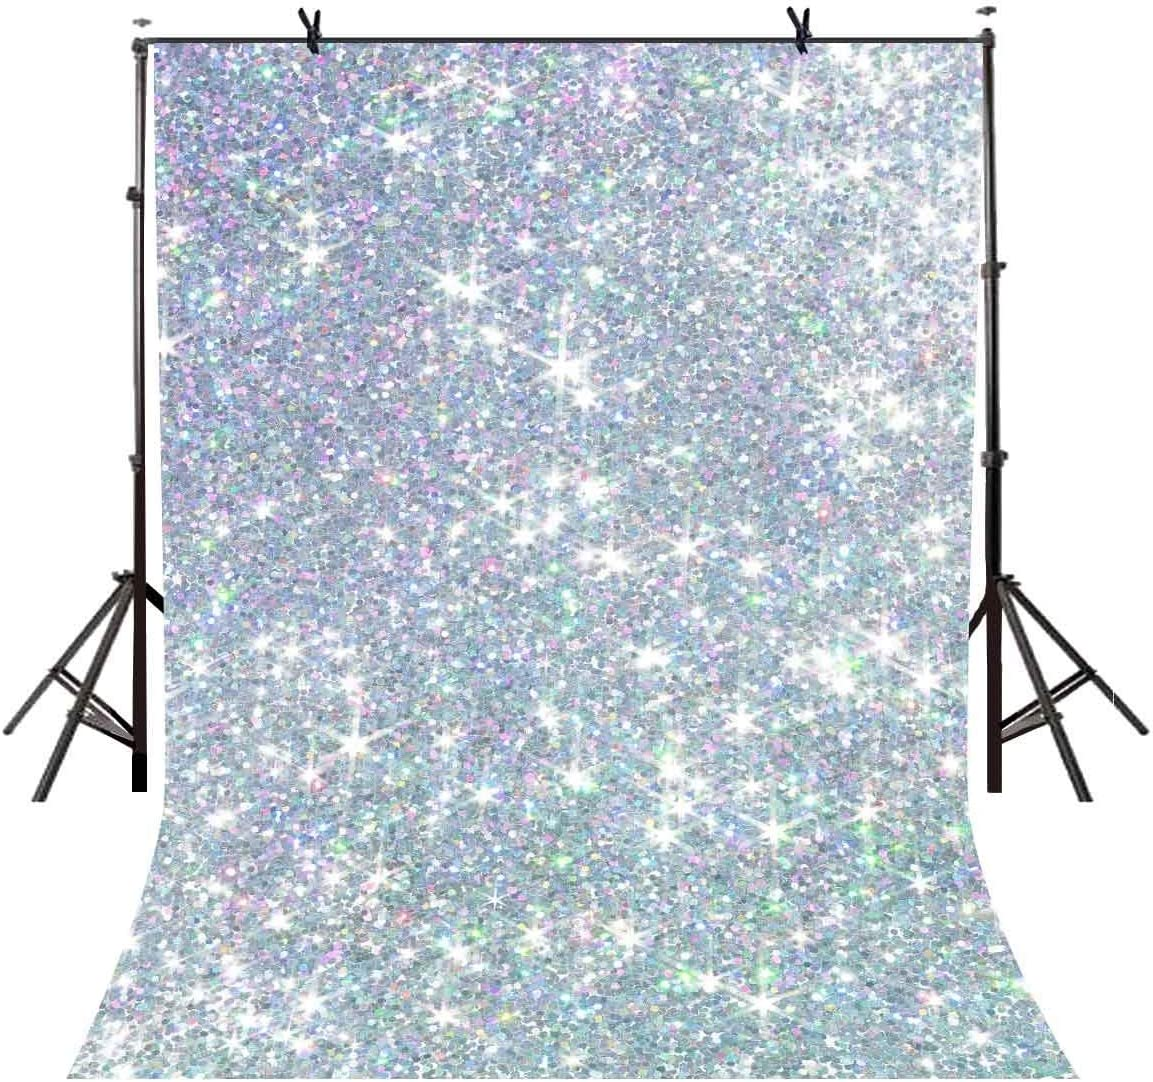 GoEoo 5x7ft Marble Backdrop Shiny Marble Simple Photography Backdrop Photo Studio Background Props LYGE868